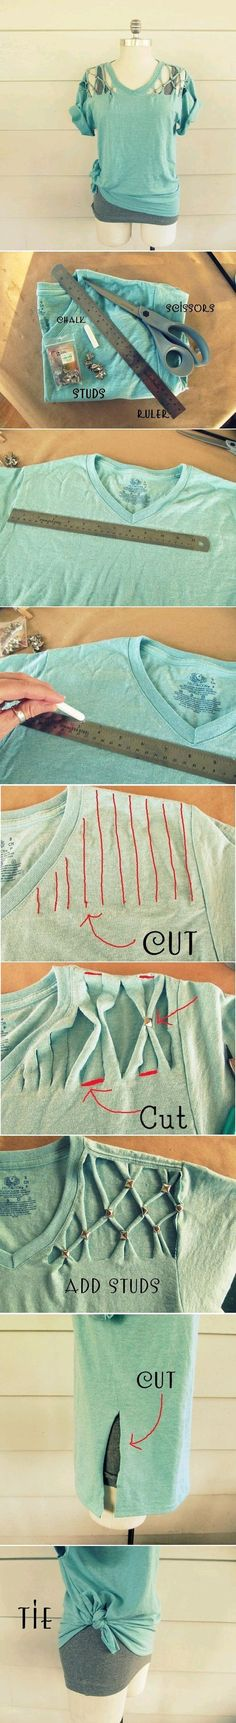 DIY Cut + Studded shirt